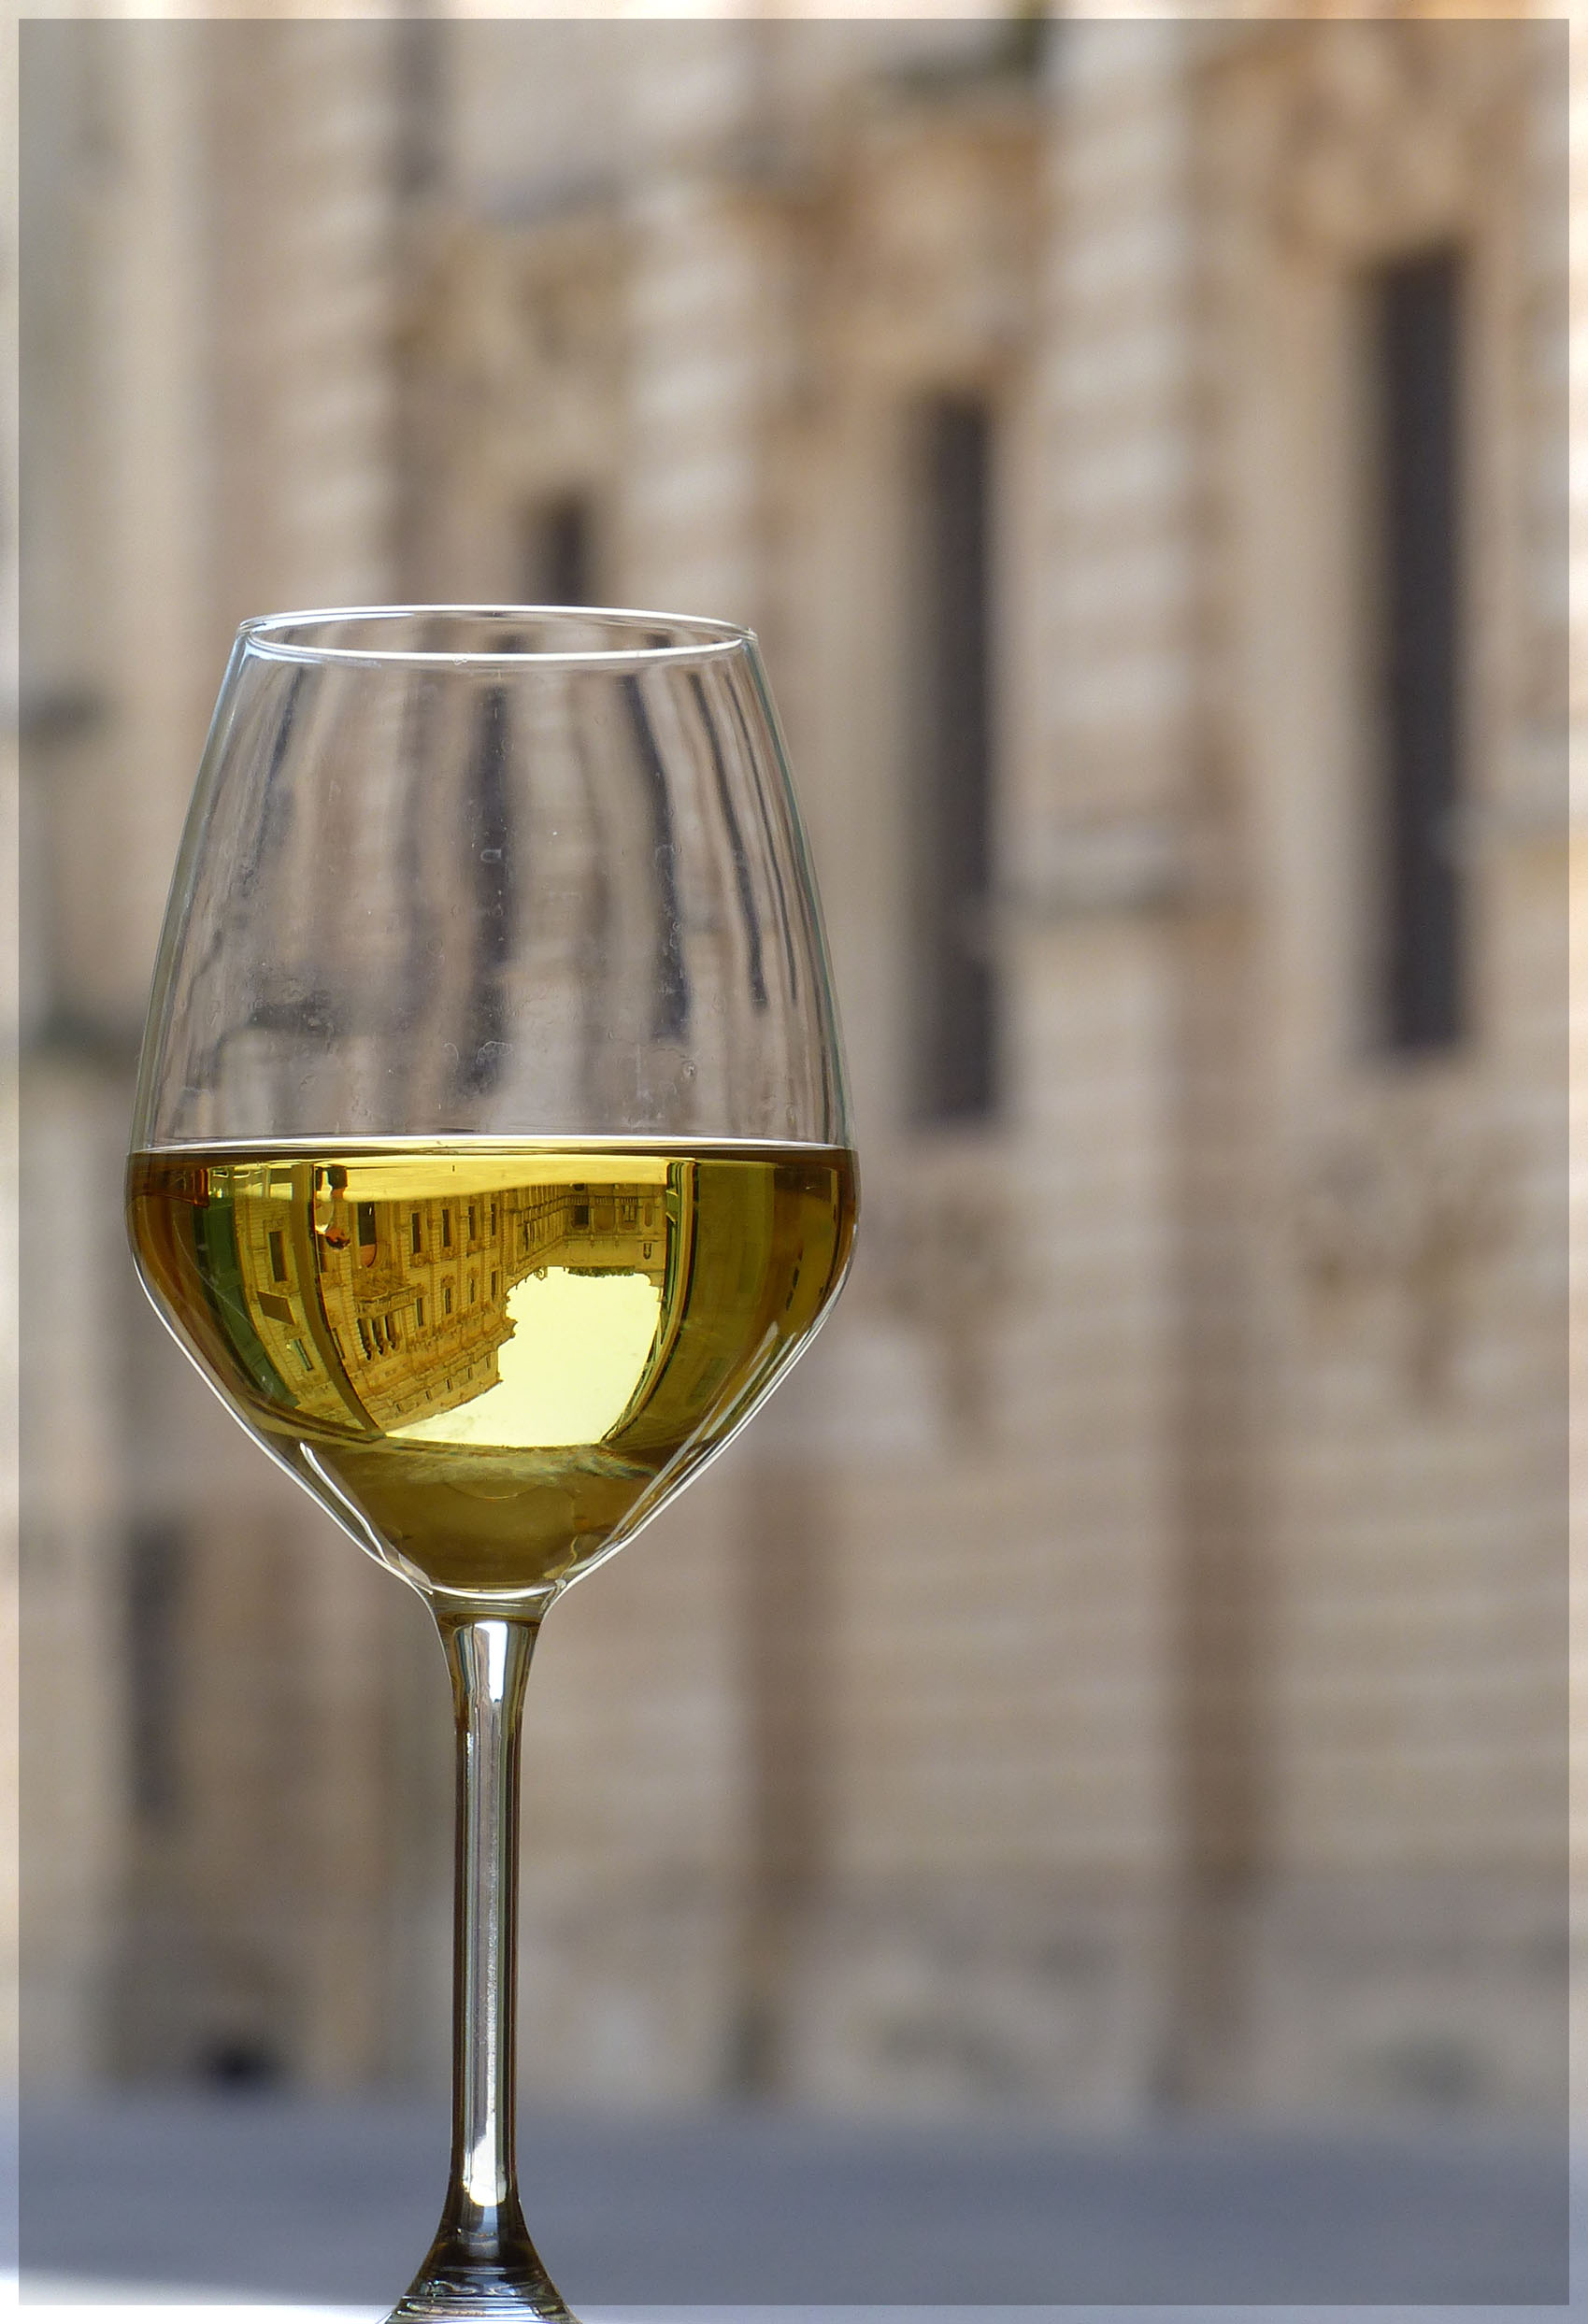 Glass of white wine with old buildings behind